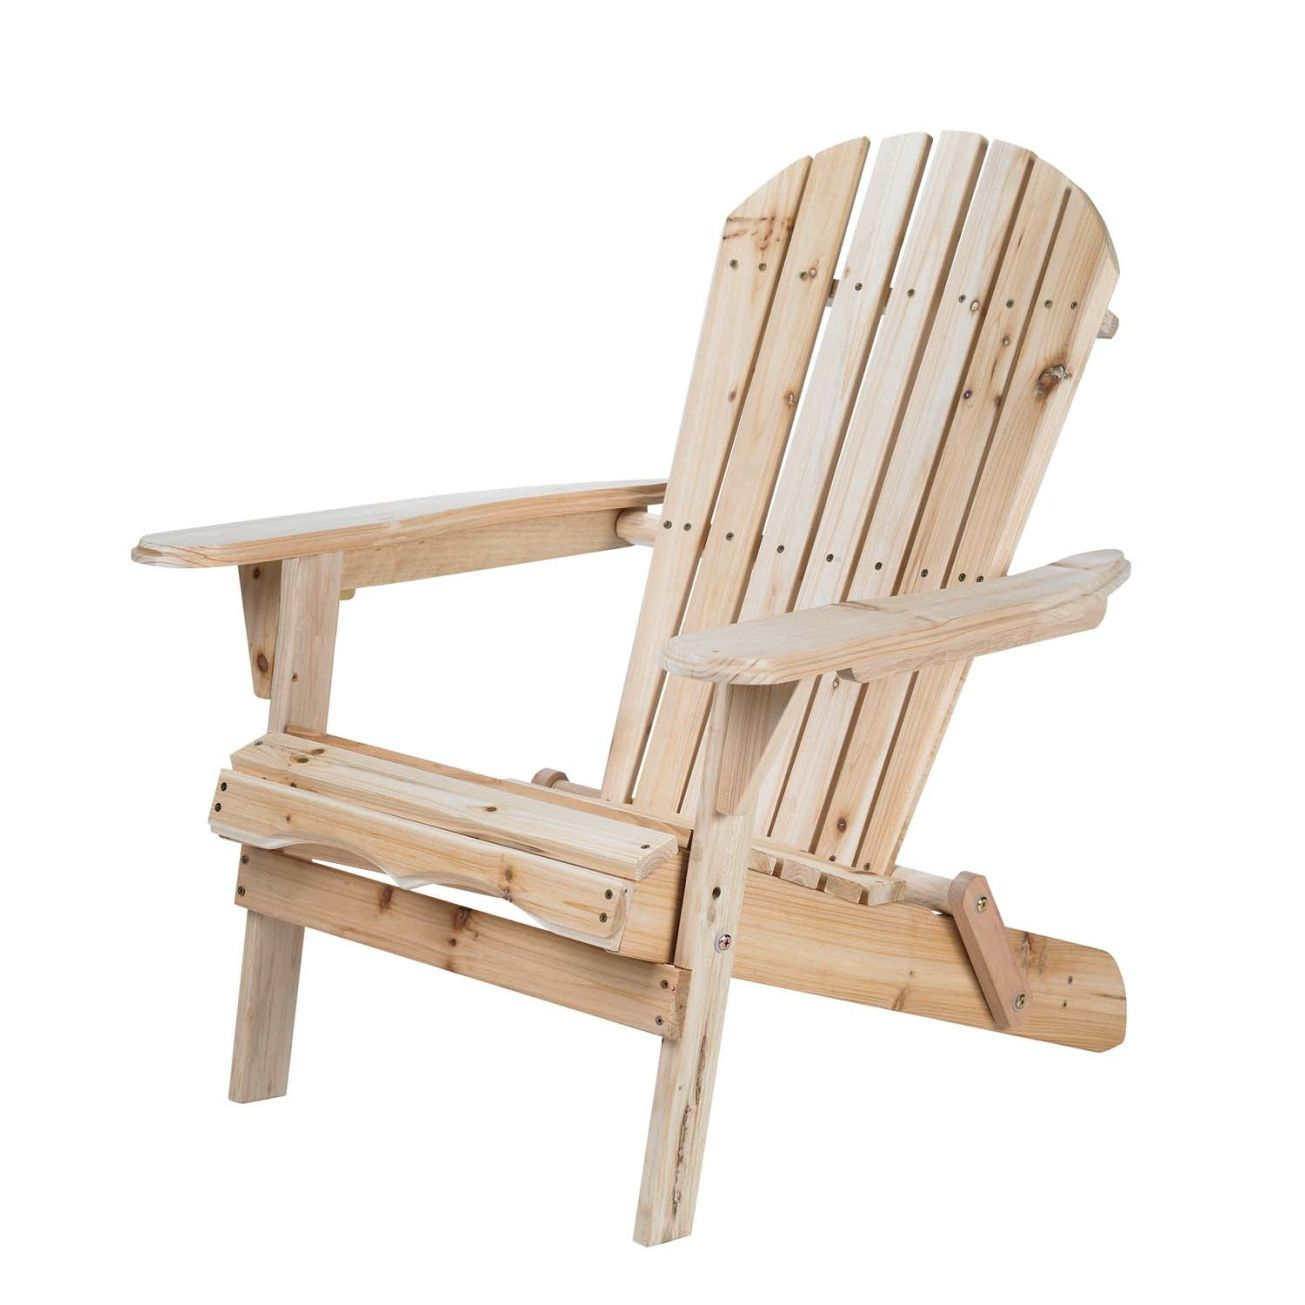 Ace Adirondack Chairs Painted Kitchen Living Accents Folding Chair Rocking Hardware 49 99